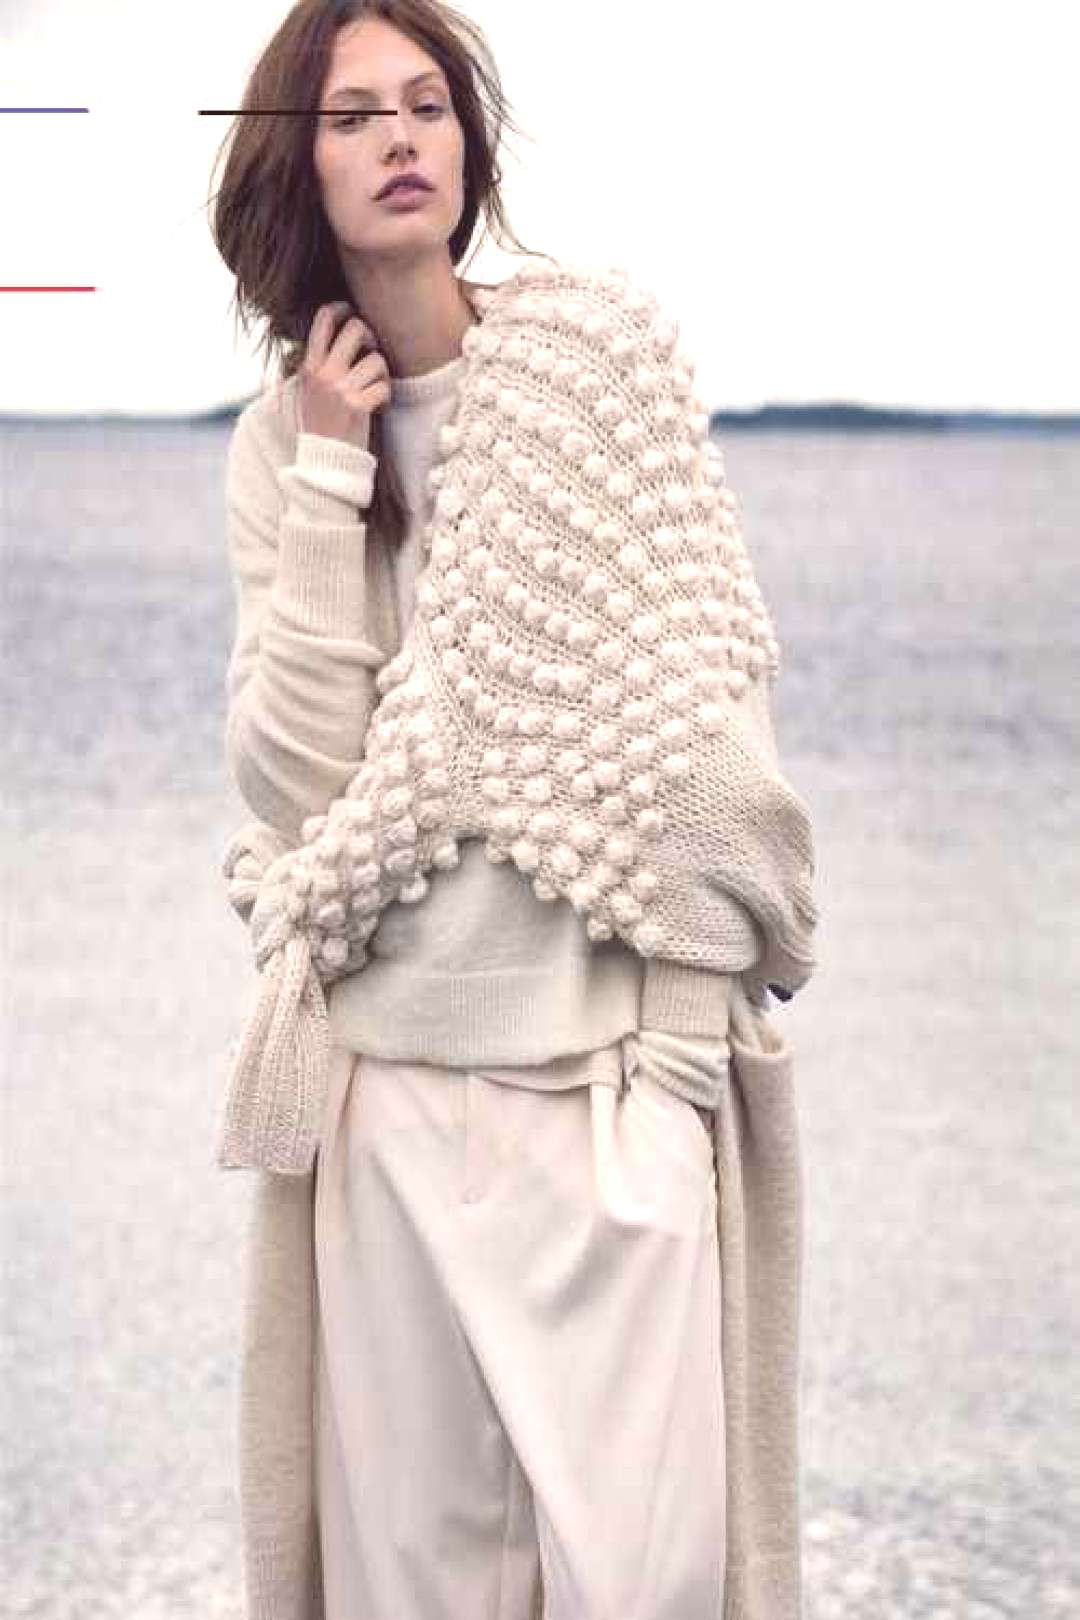 Layering knitwear all in cream the dream! Layering knitwear all in cream the dream!